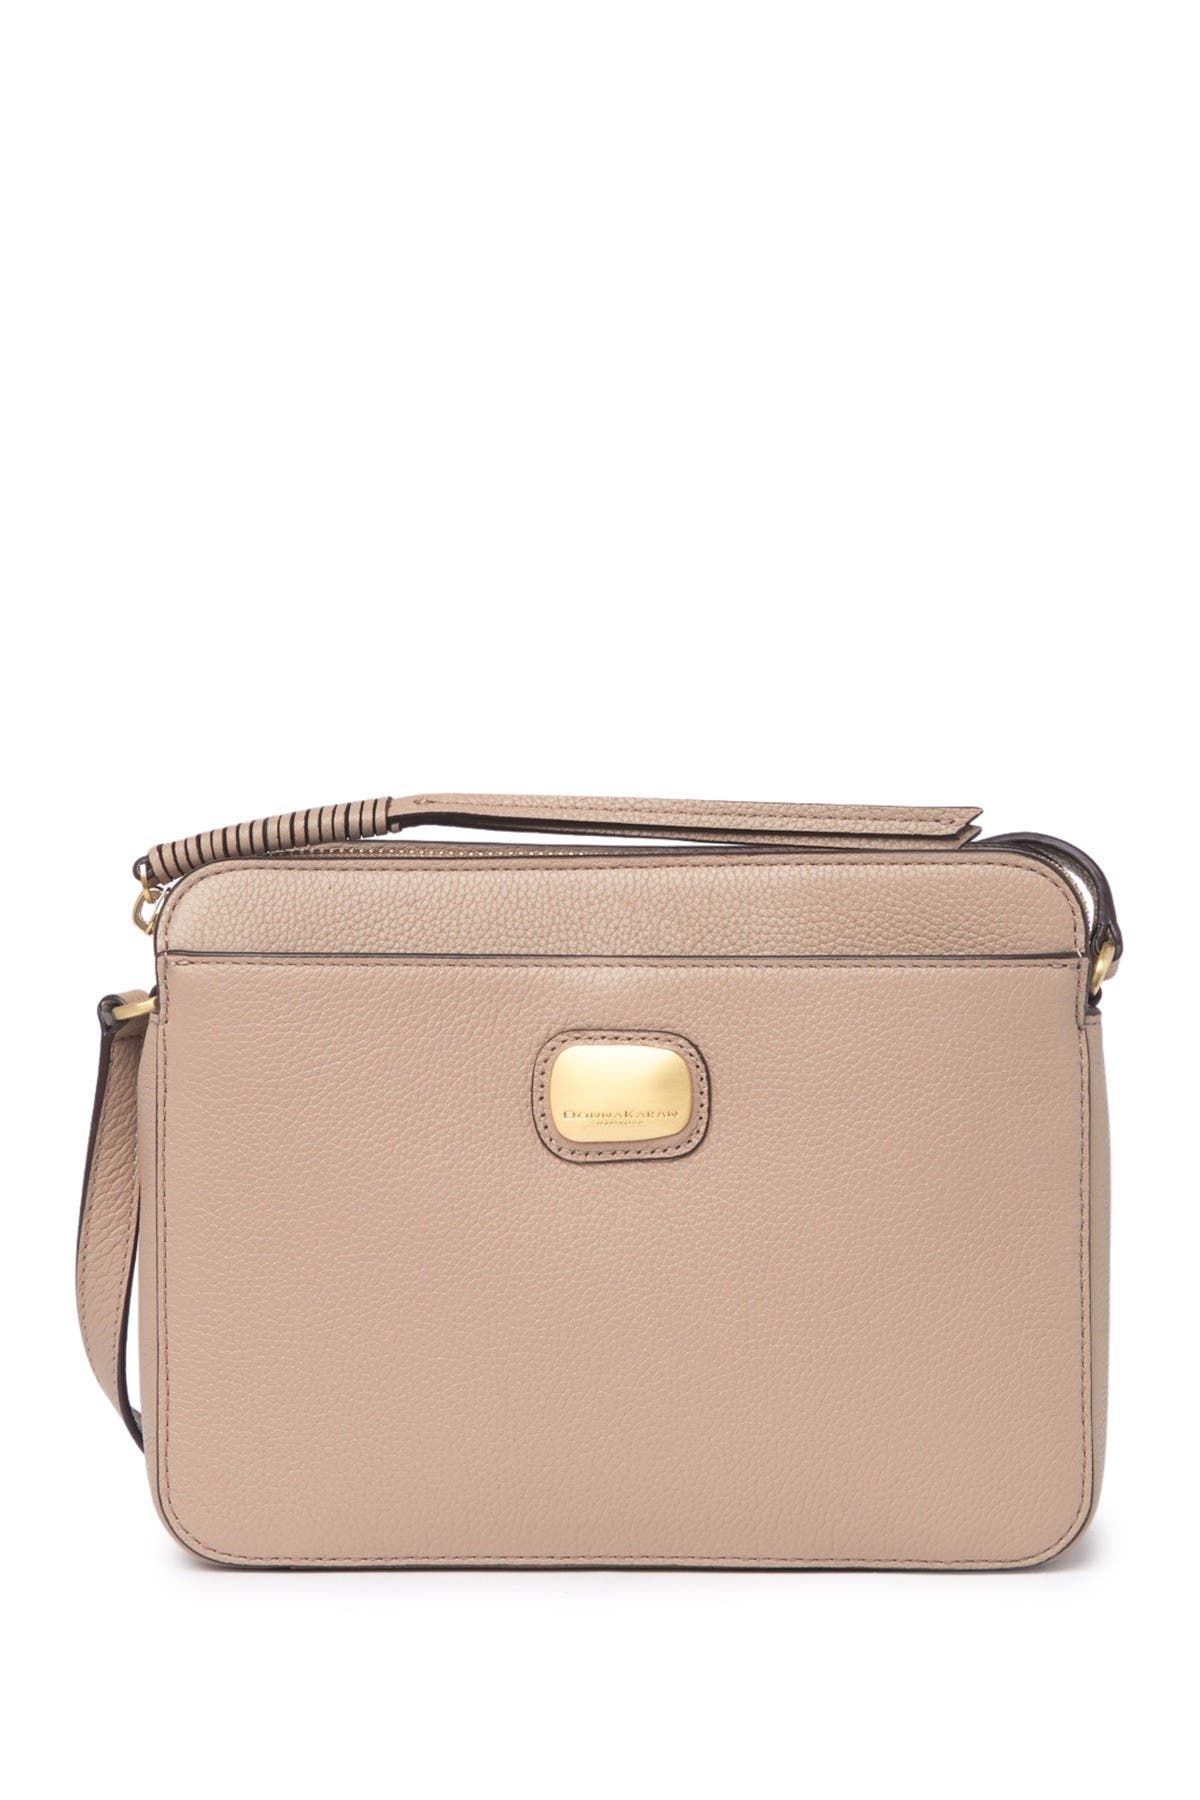 Image of Donna Karan Leather Triple Compartment Crossbody Bag